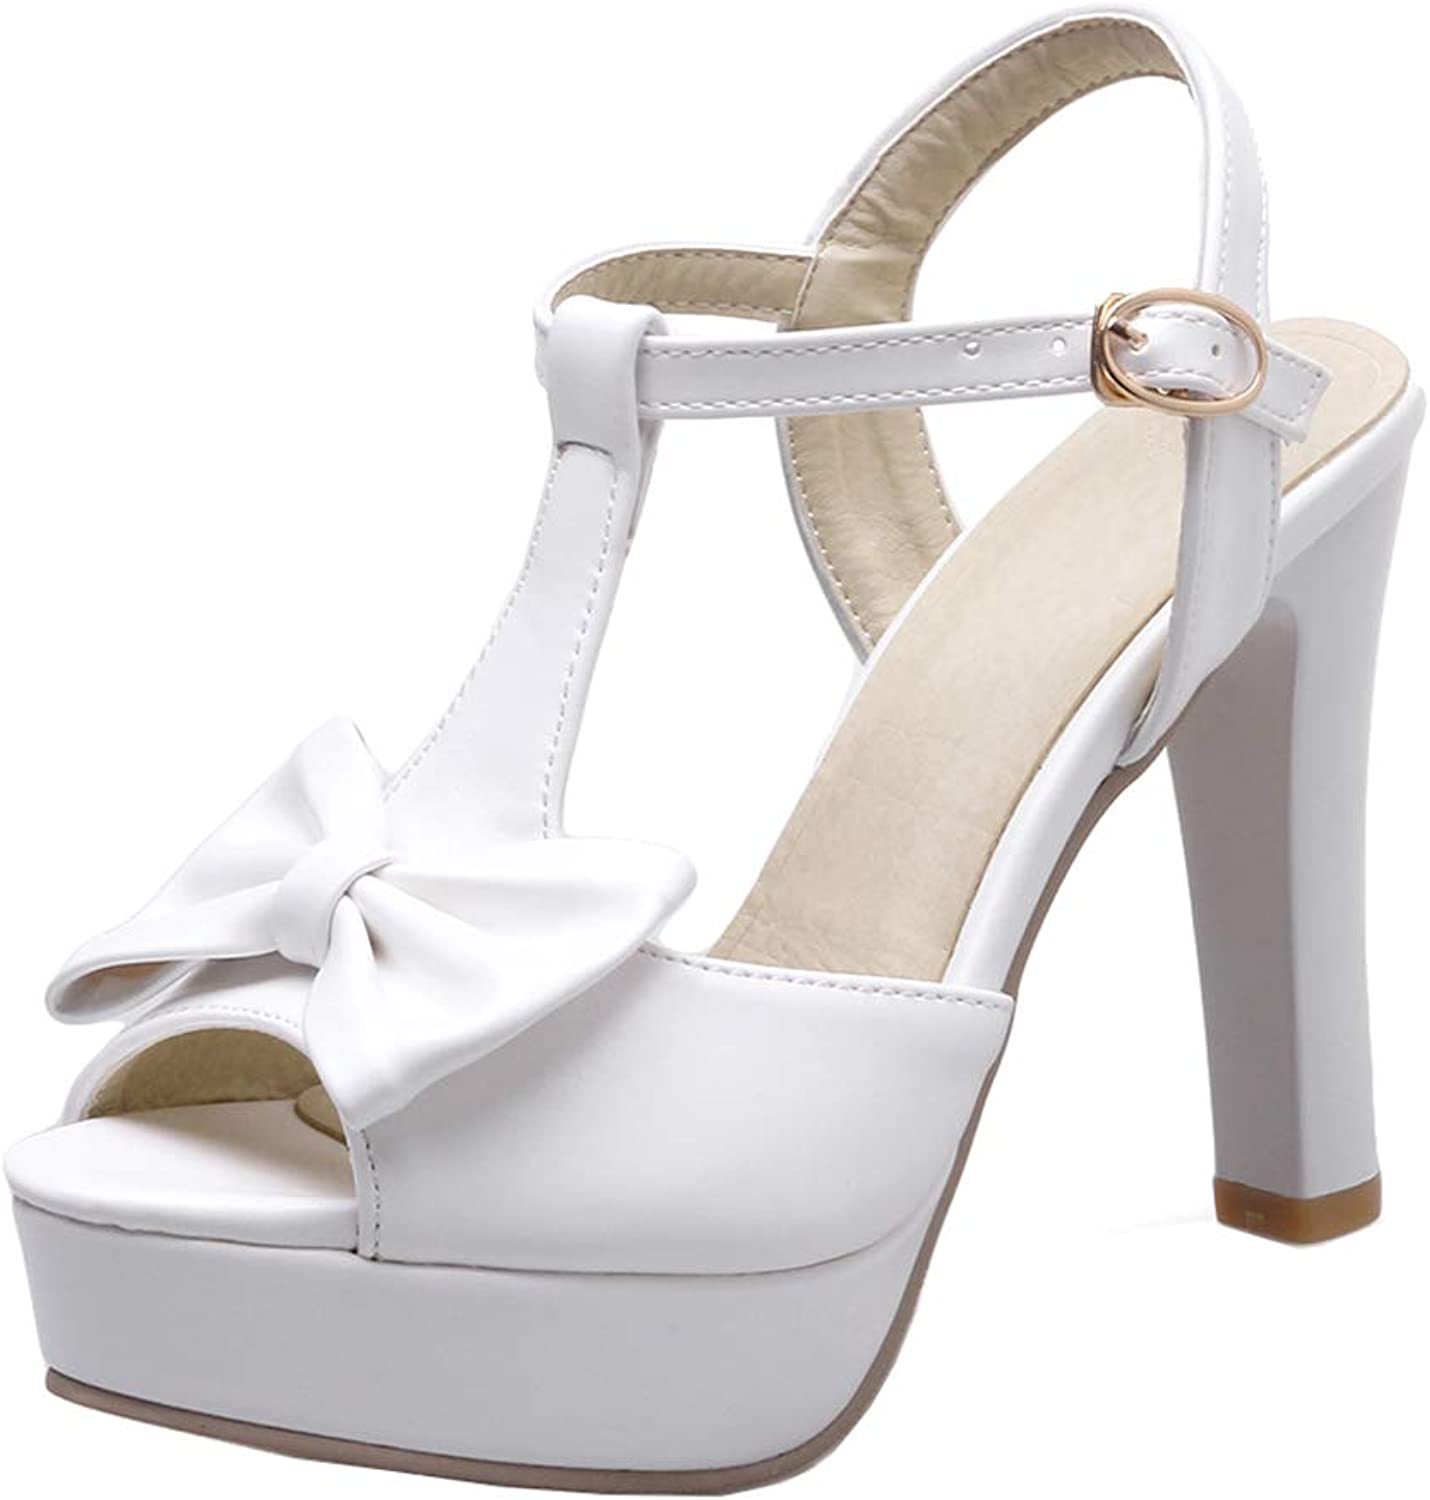 XDLEX Women's Lolita Cosplay Bowknot Sandals T Strap Platform Pumps Ankle Wrap-Around Strap Vintage Mary Janes Cute Buckle Strap Peep Toe Chunky Block Heel